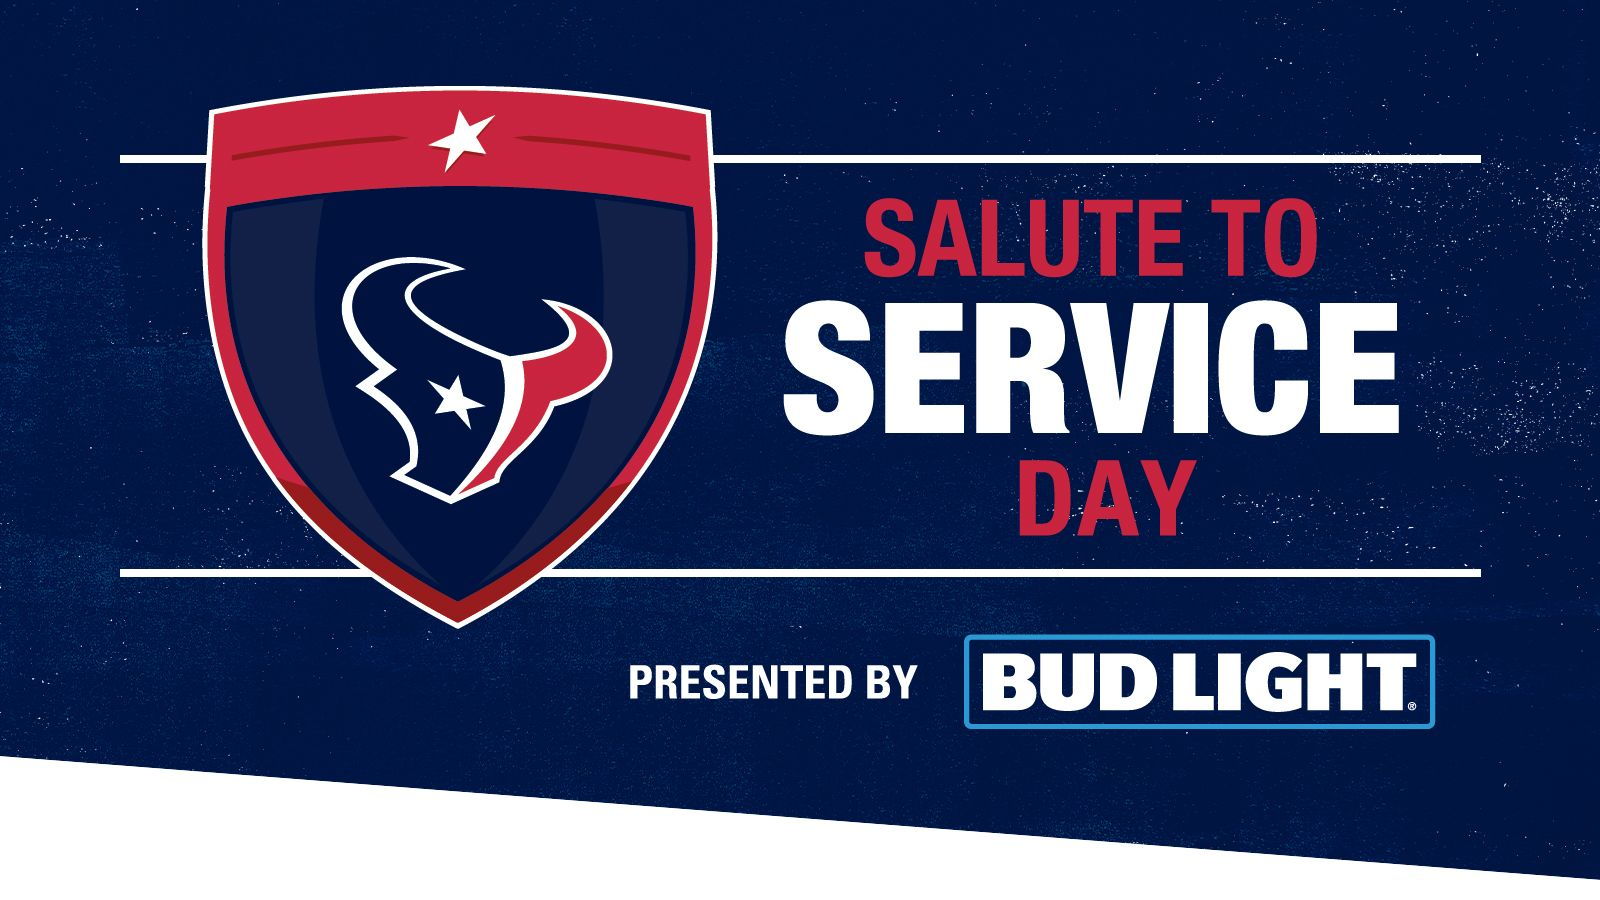 Salute to Service presented by Bud Light